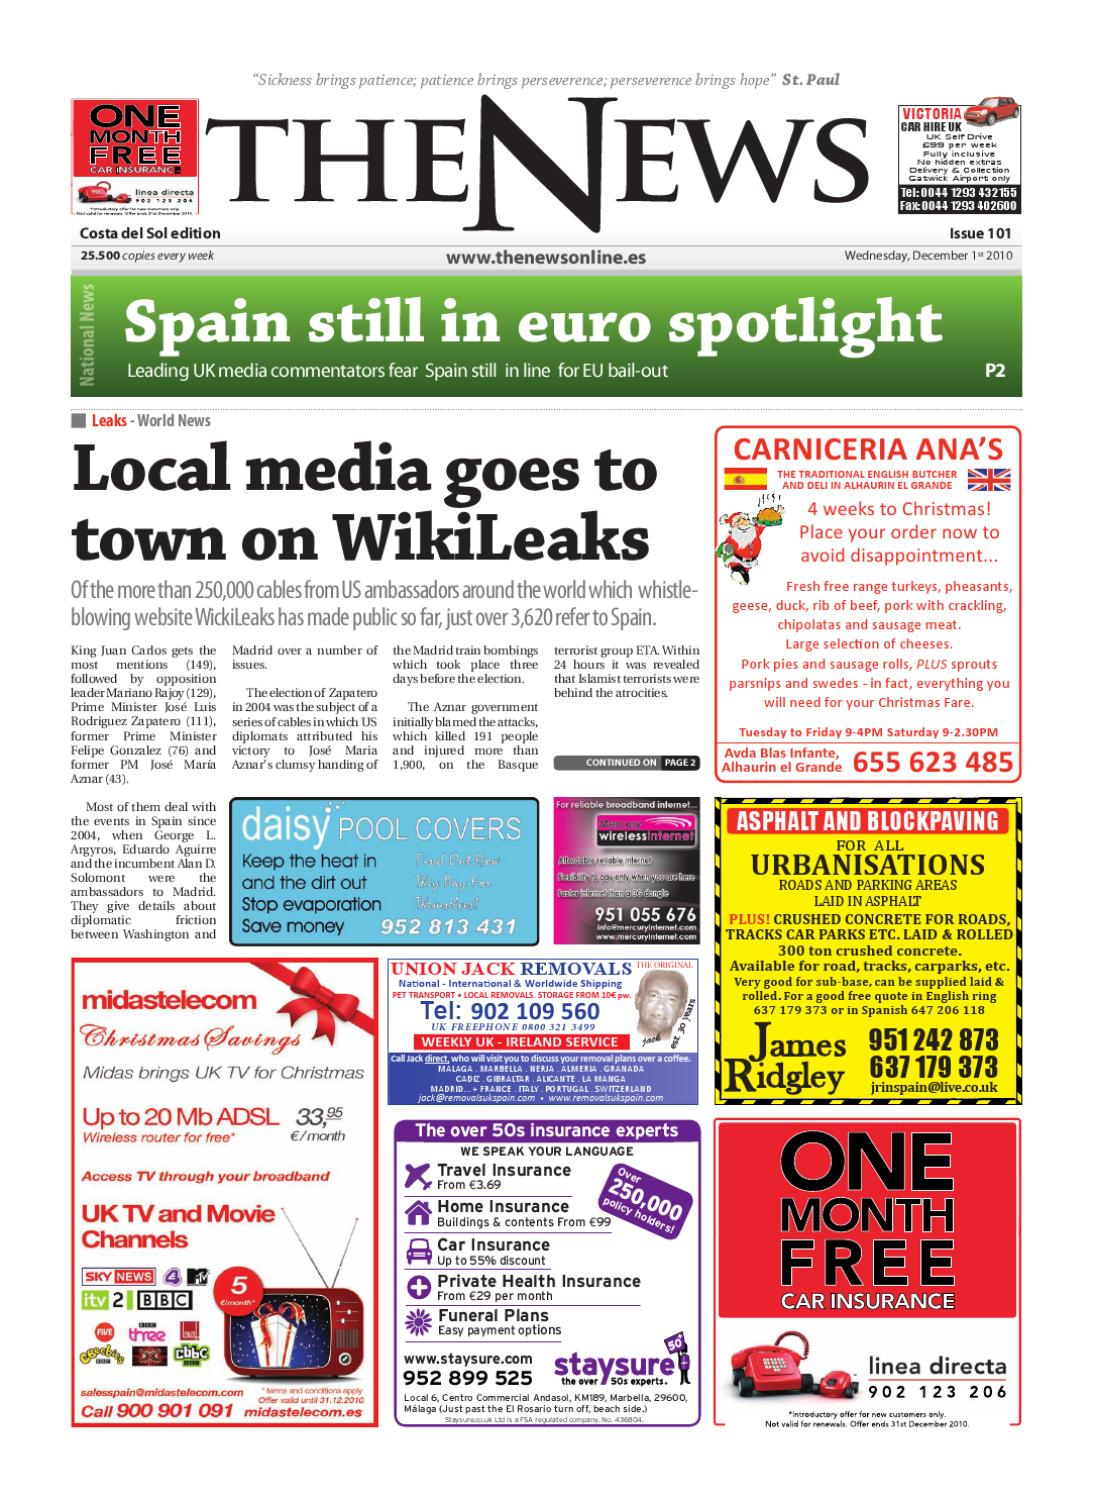 The News Newspaper - Issue 101 (1st December 2010) by The